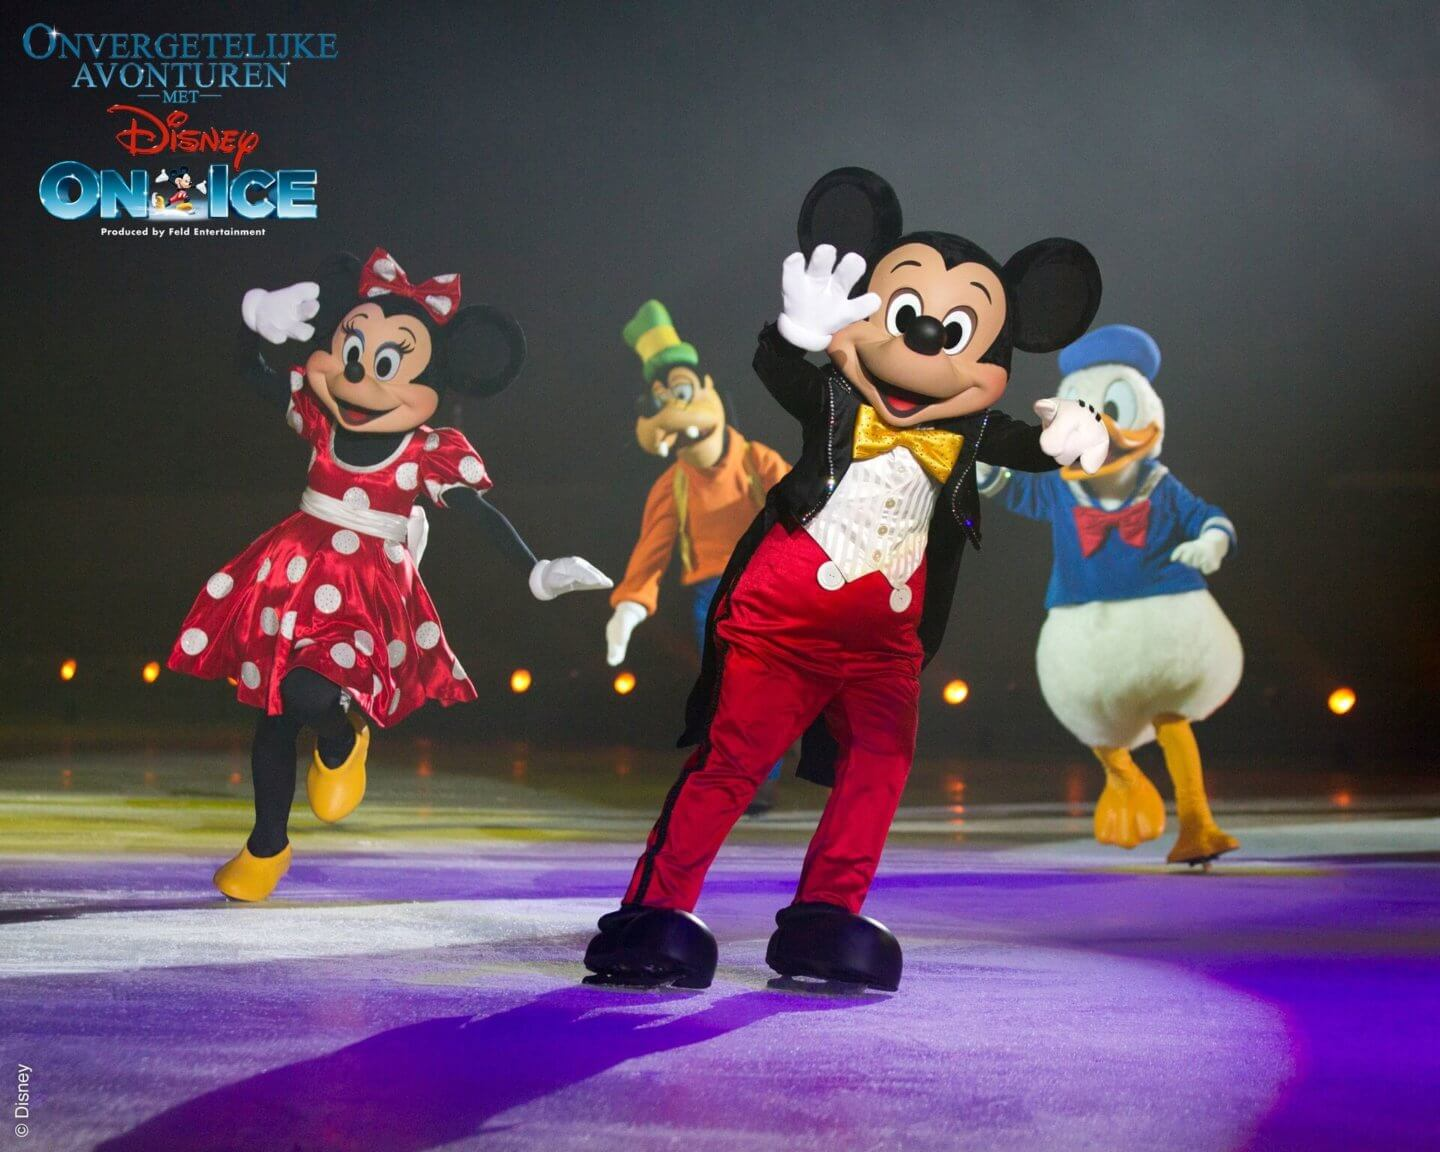 Winactie Disney On Ice